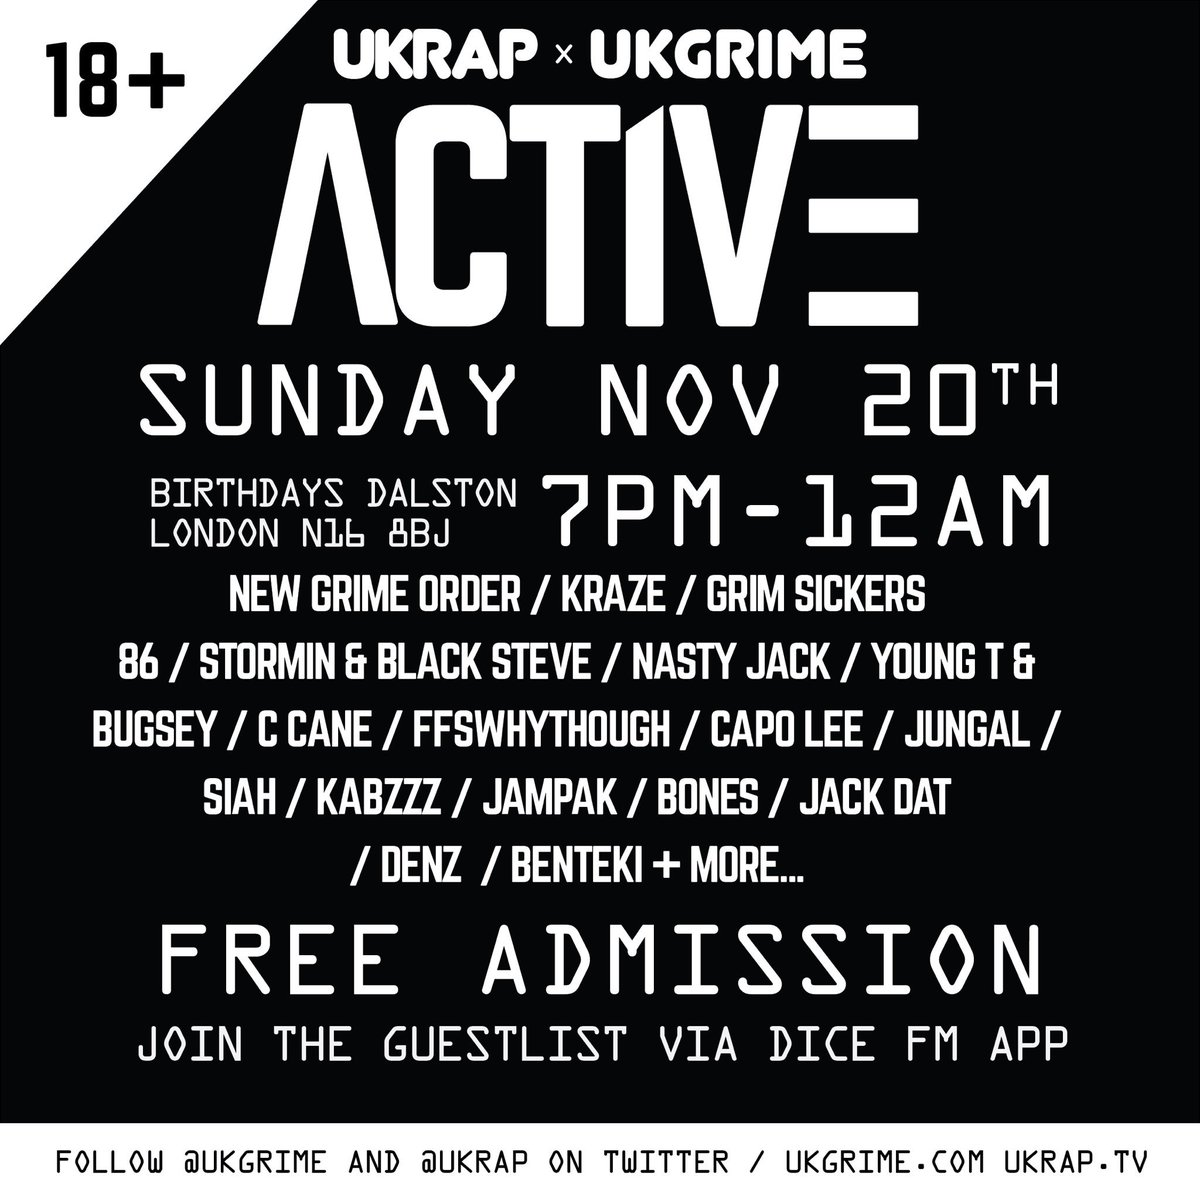 uk grime on twitter sign up via the dice fm app for free guestlist